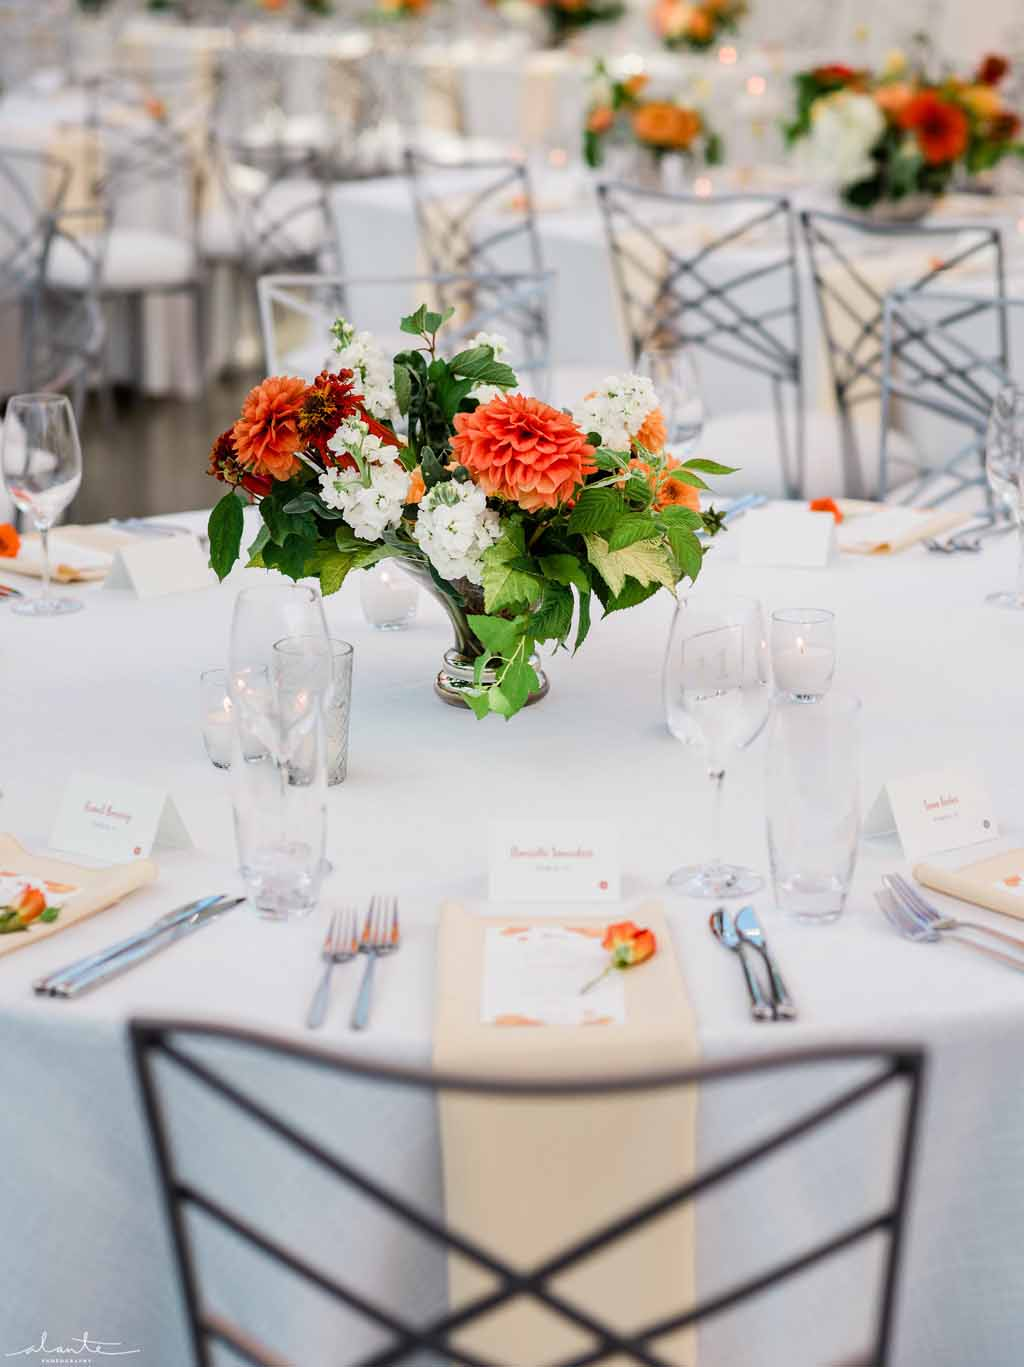 Low orange centerpiece with summer flowers in vibrant orange and white.